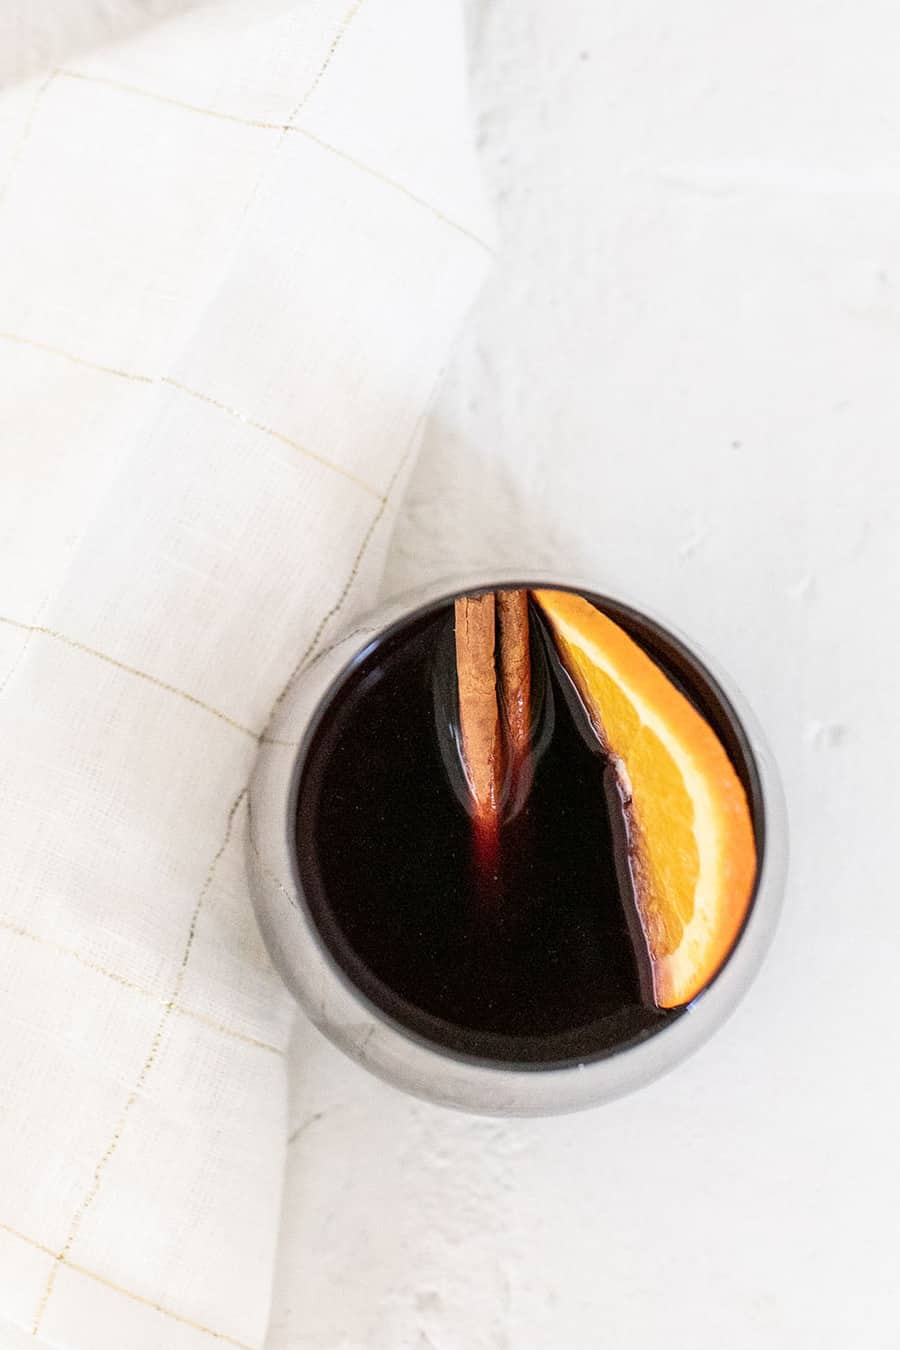 Mulled wine with cinnamon stick and orange slice.